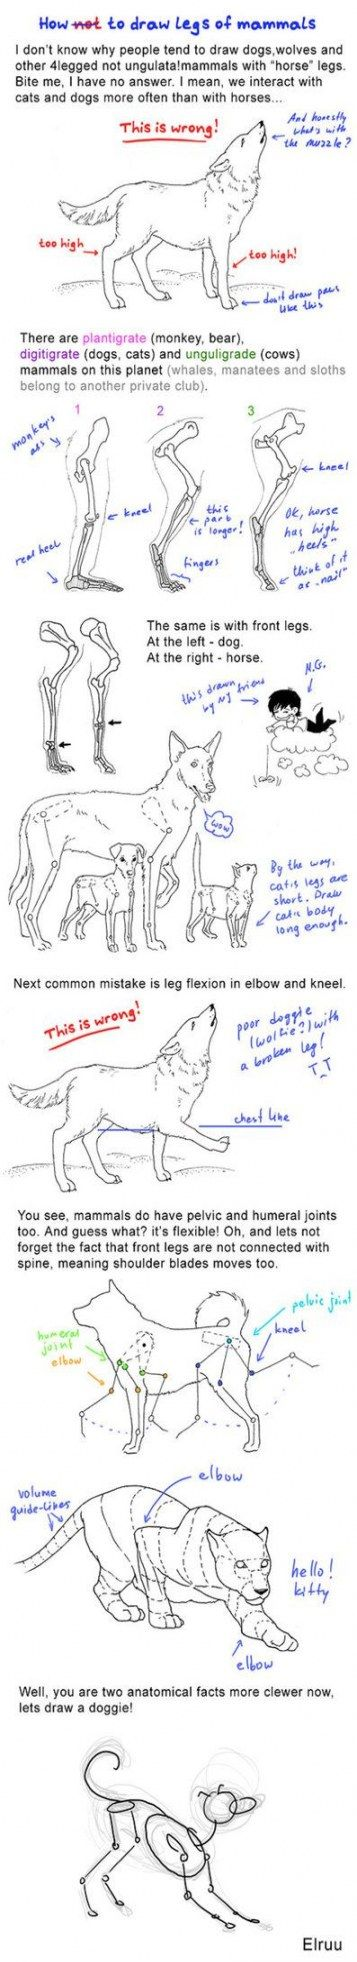 Best How To Draw Manga Animals Awesome Ideas #howto